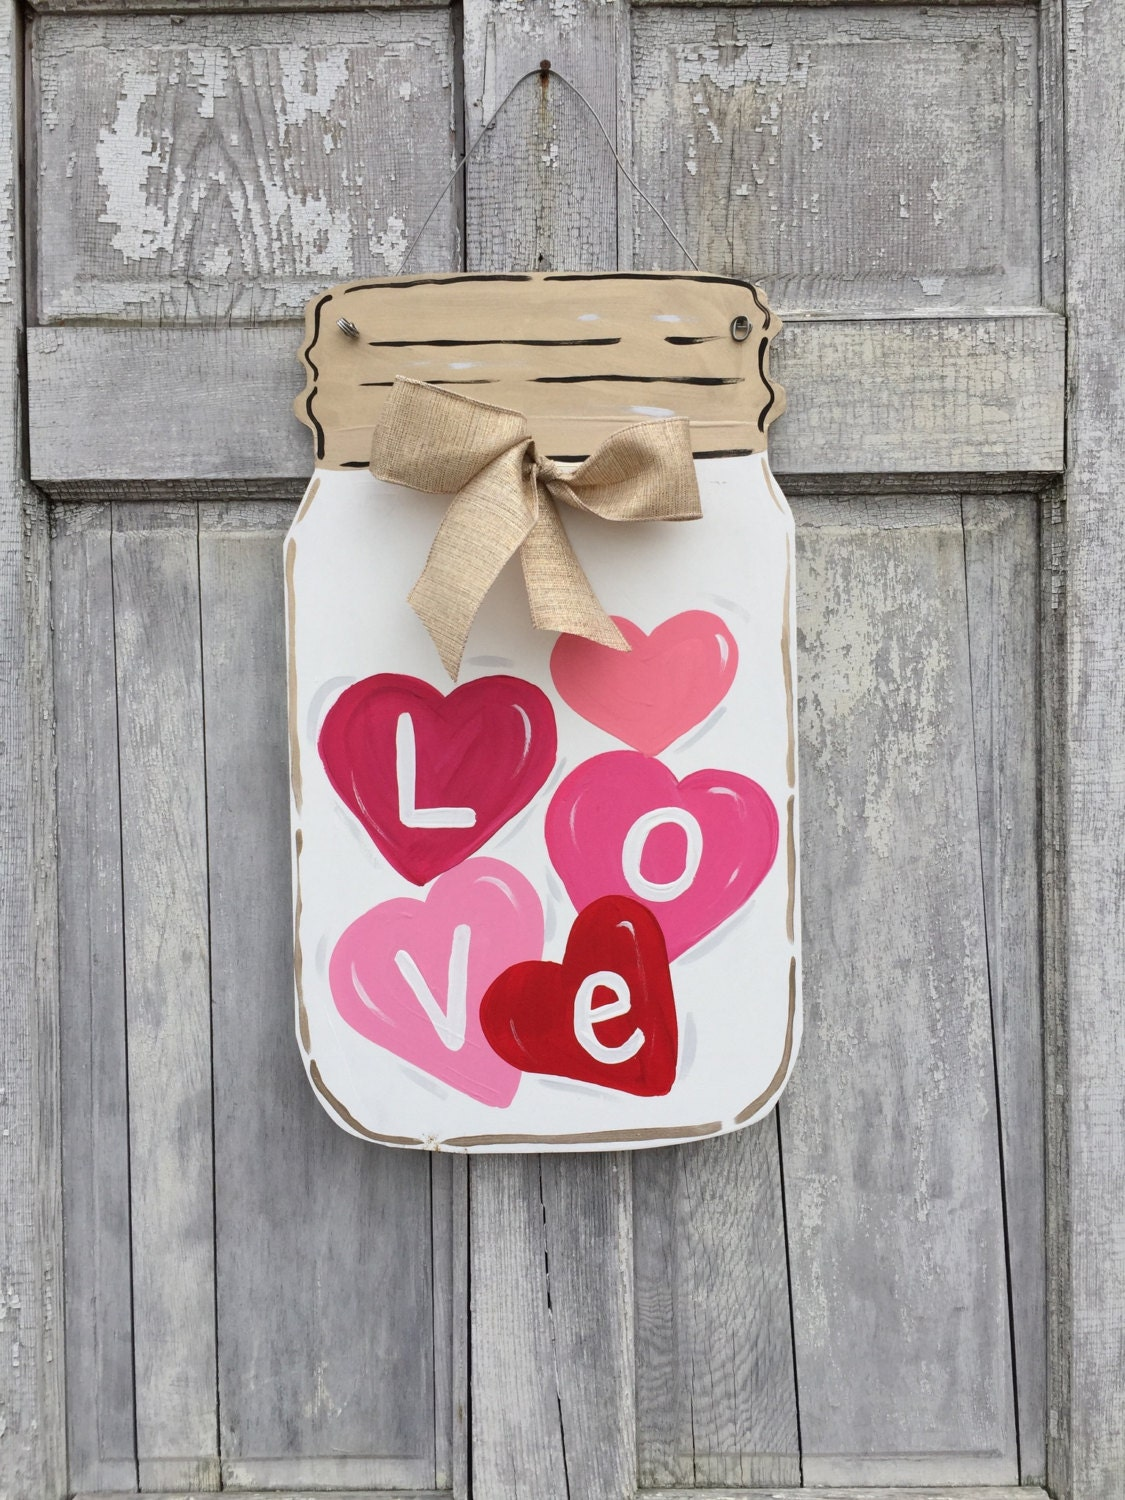 valentines day door hanger heart door hanger mason jar door hanger valentine welcome sign february door